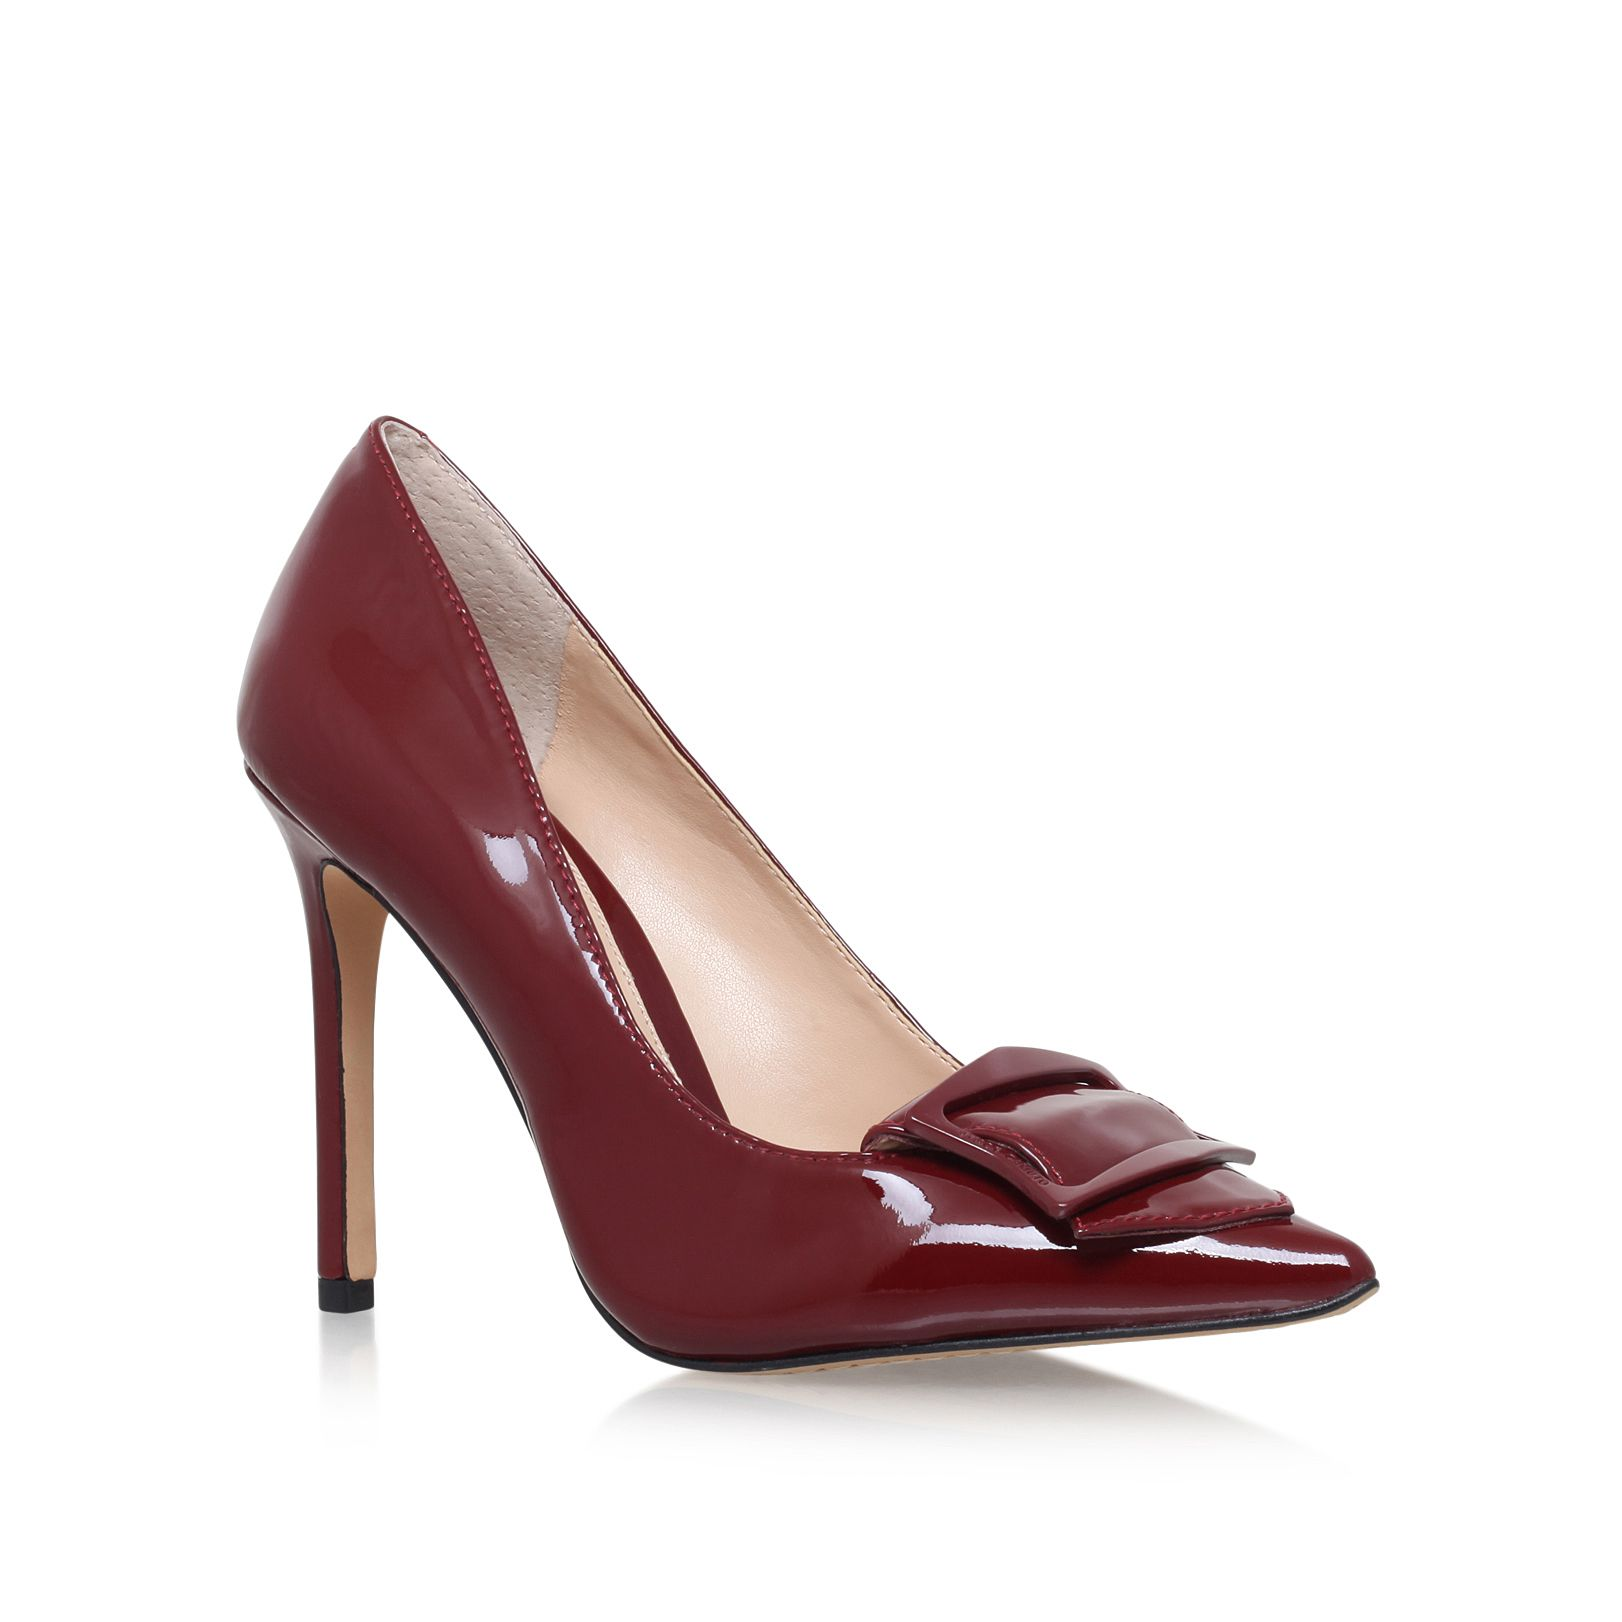 Vince Camuto Vince Camuto Nancita high heel court shoes, Red